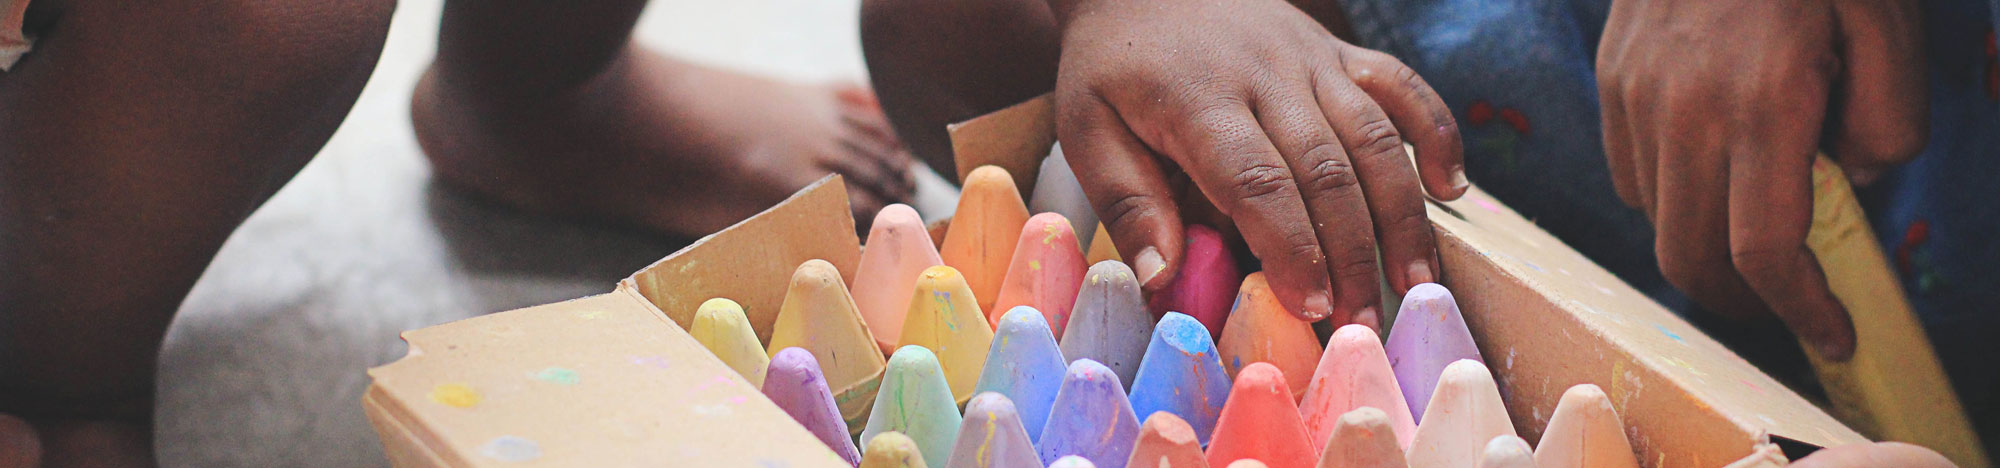 Child choosing coloured chalk from a box